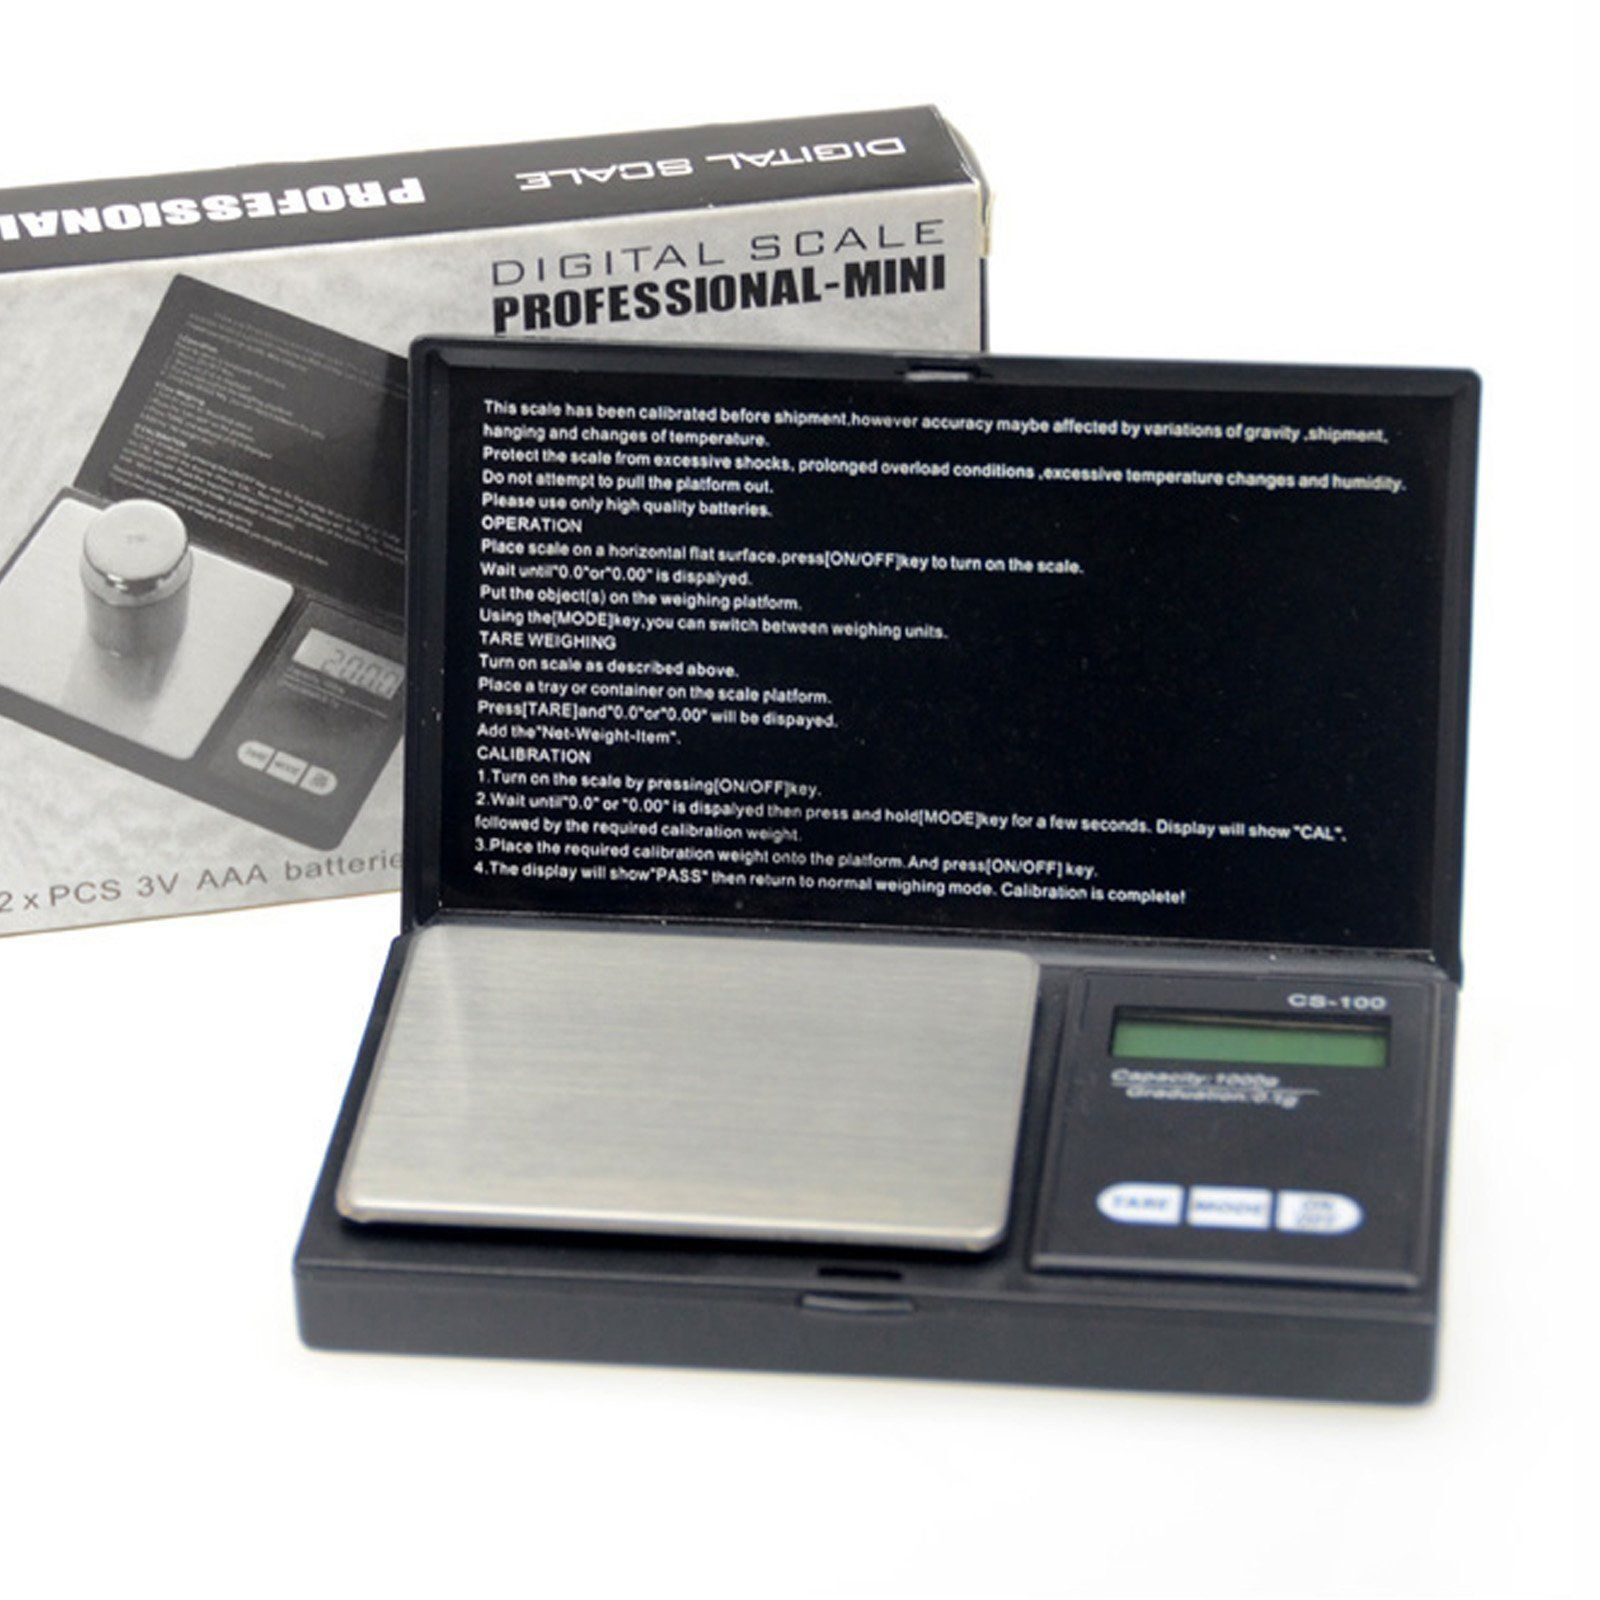 100g x 0.1g Pocket Jewelry Gold Digital Scale Silver Professional scale US Jewelry & Watches